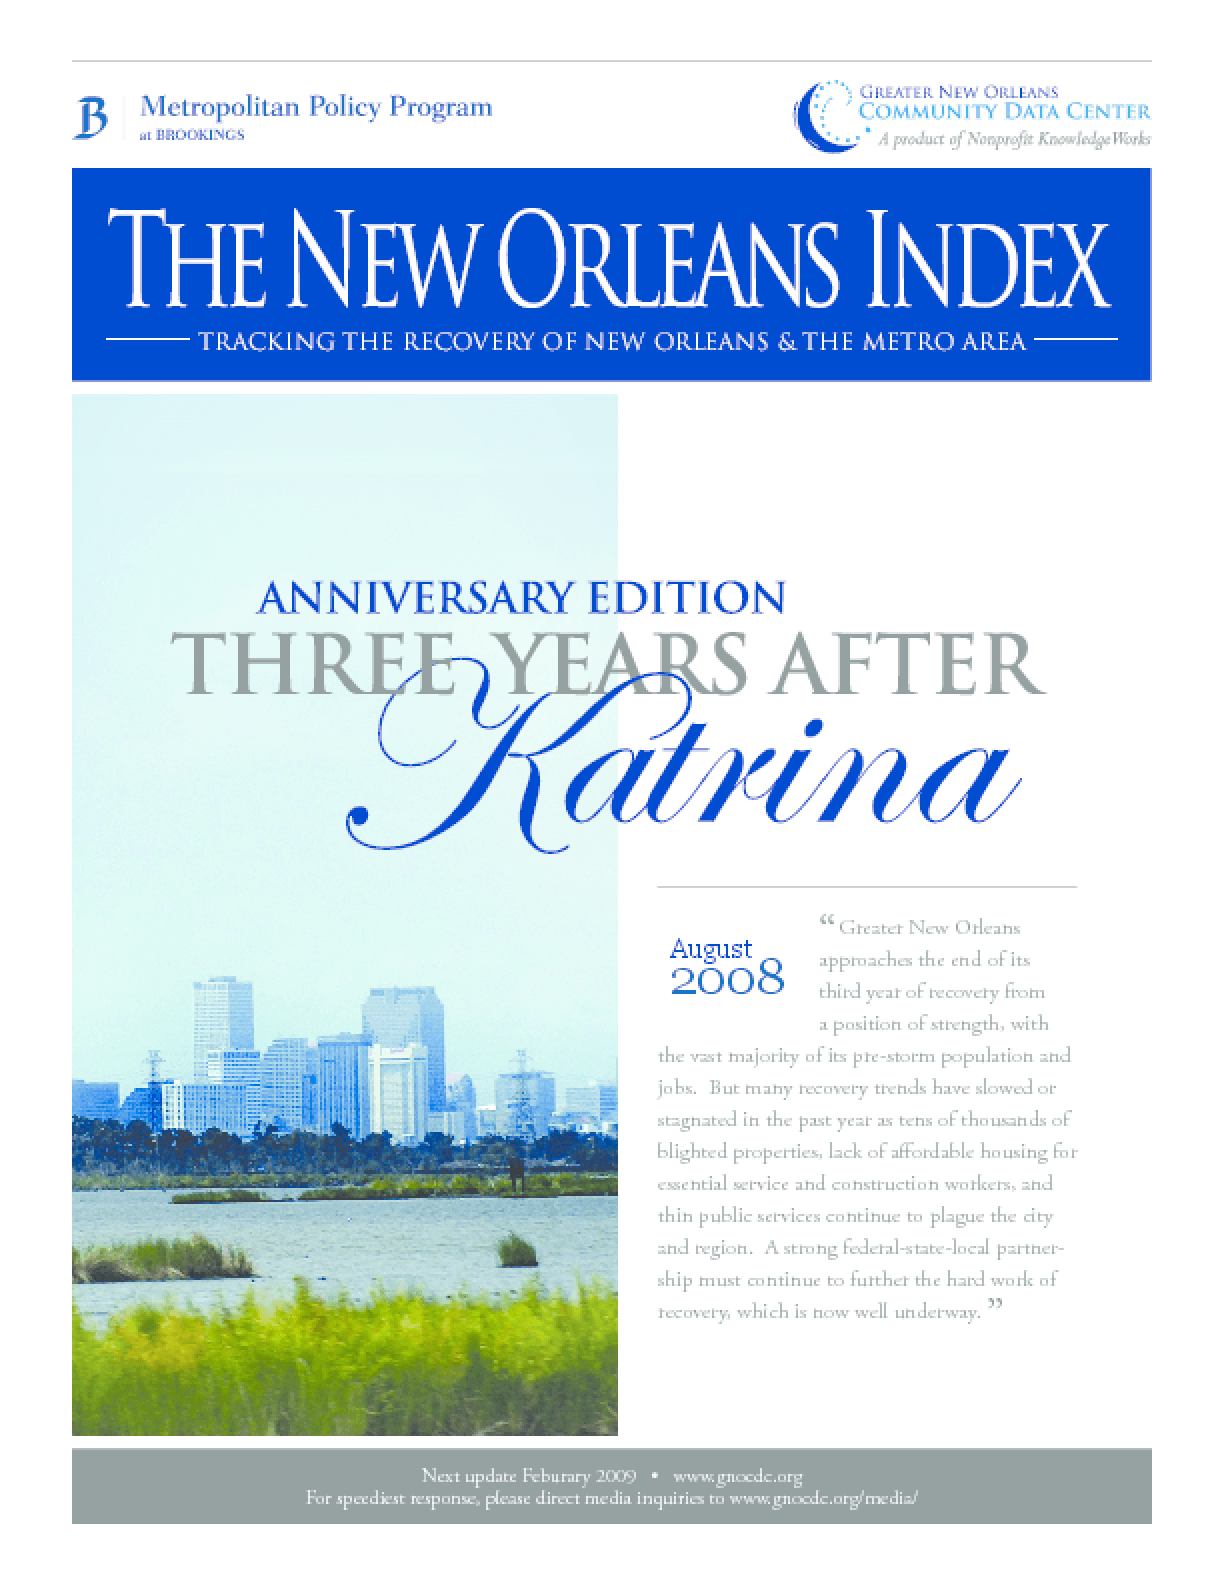 The New Orleans Index Anniversary Edition: Three Years After Katrina